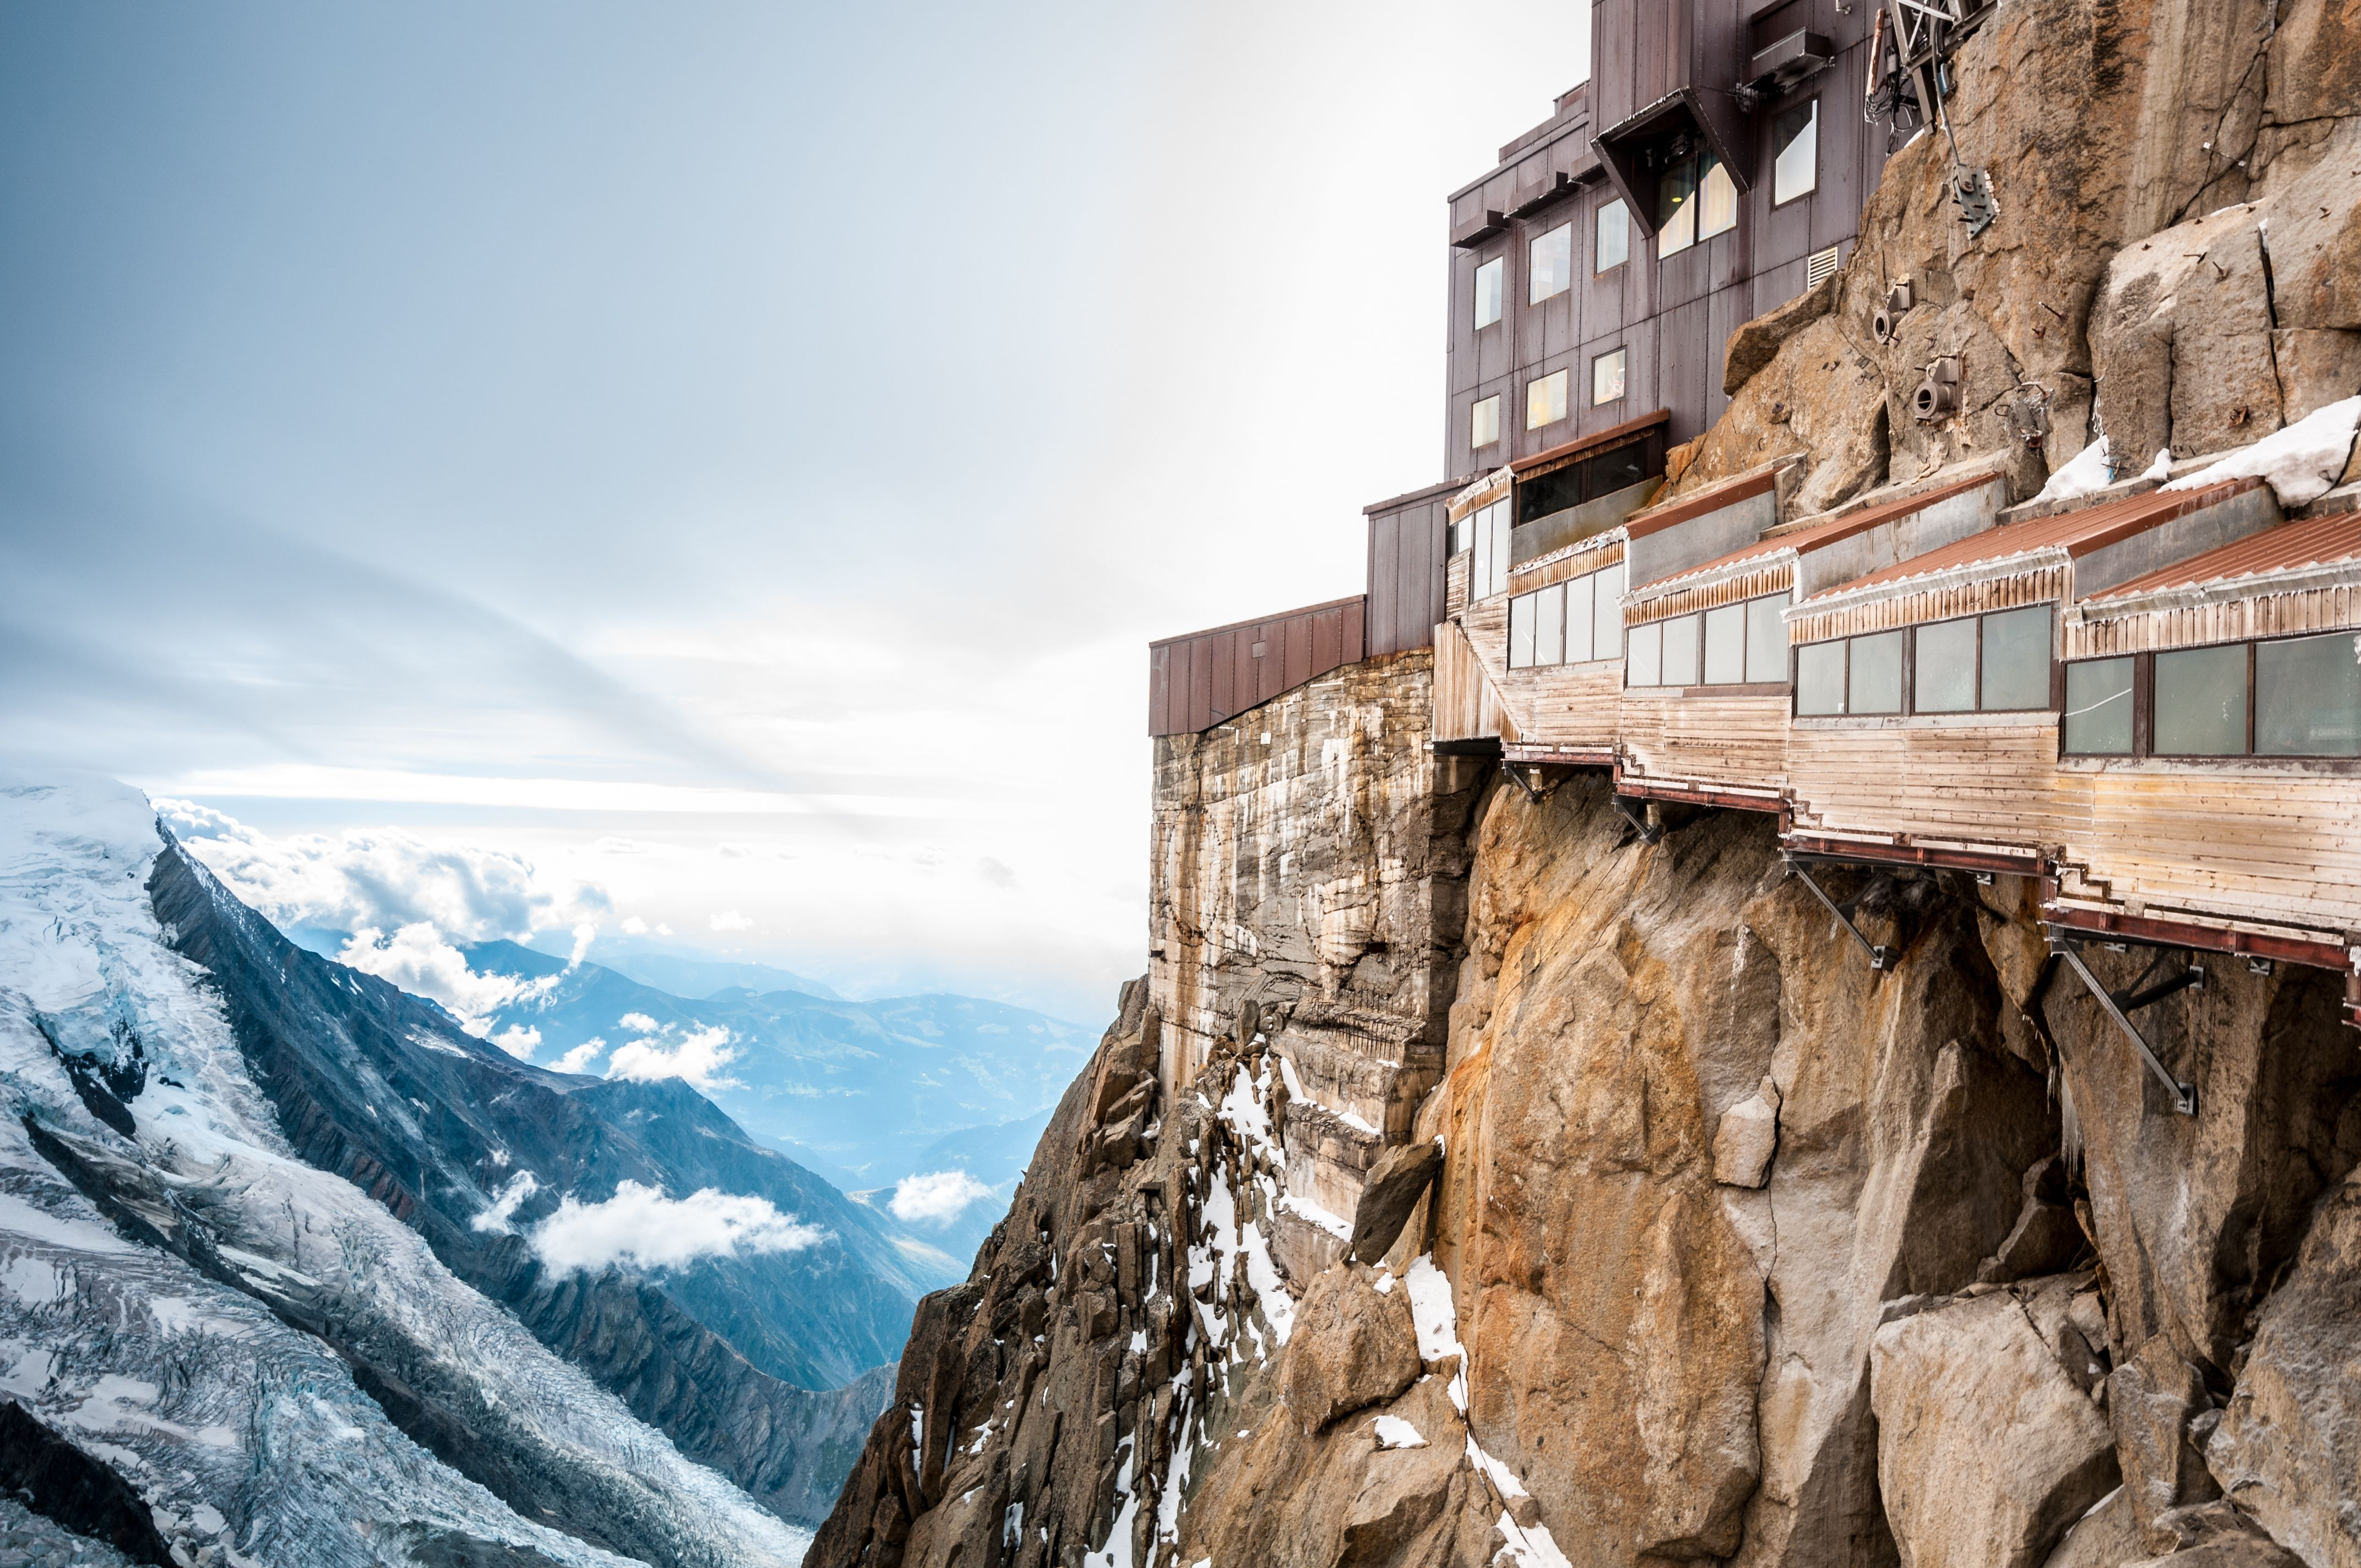 Restaurant Le 3842 Highest Maitre Restaurateur In Europe Fresh And Local Food At The Summit Of The Aiguille Du Midi Ch French Alps Vacation France Travel